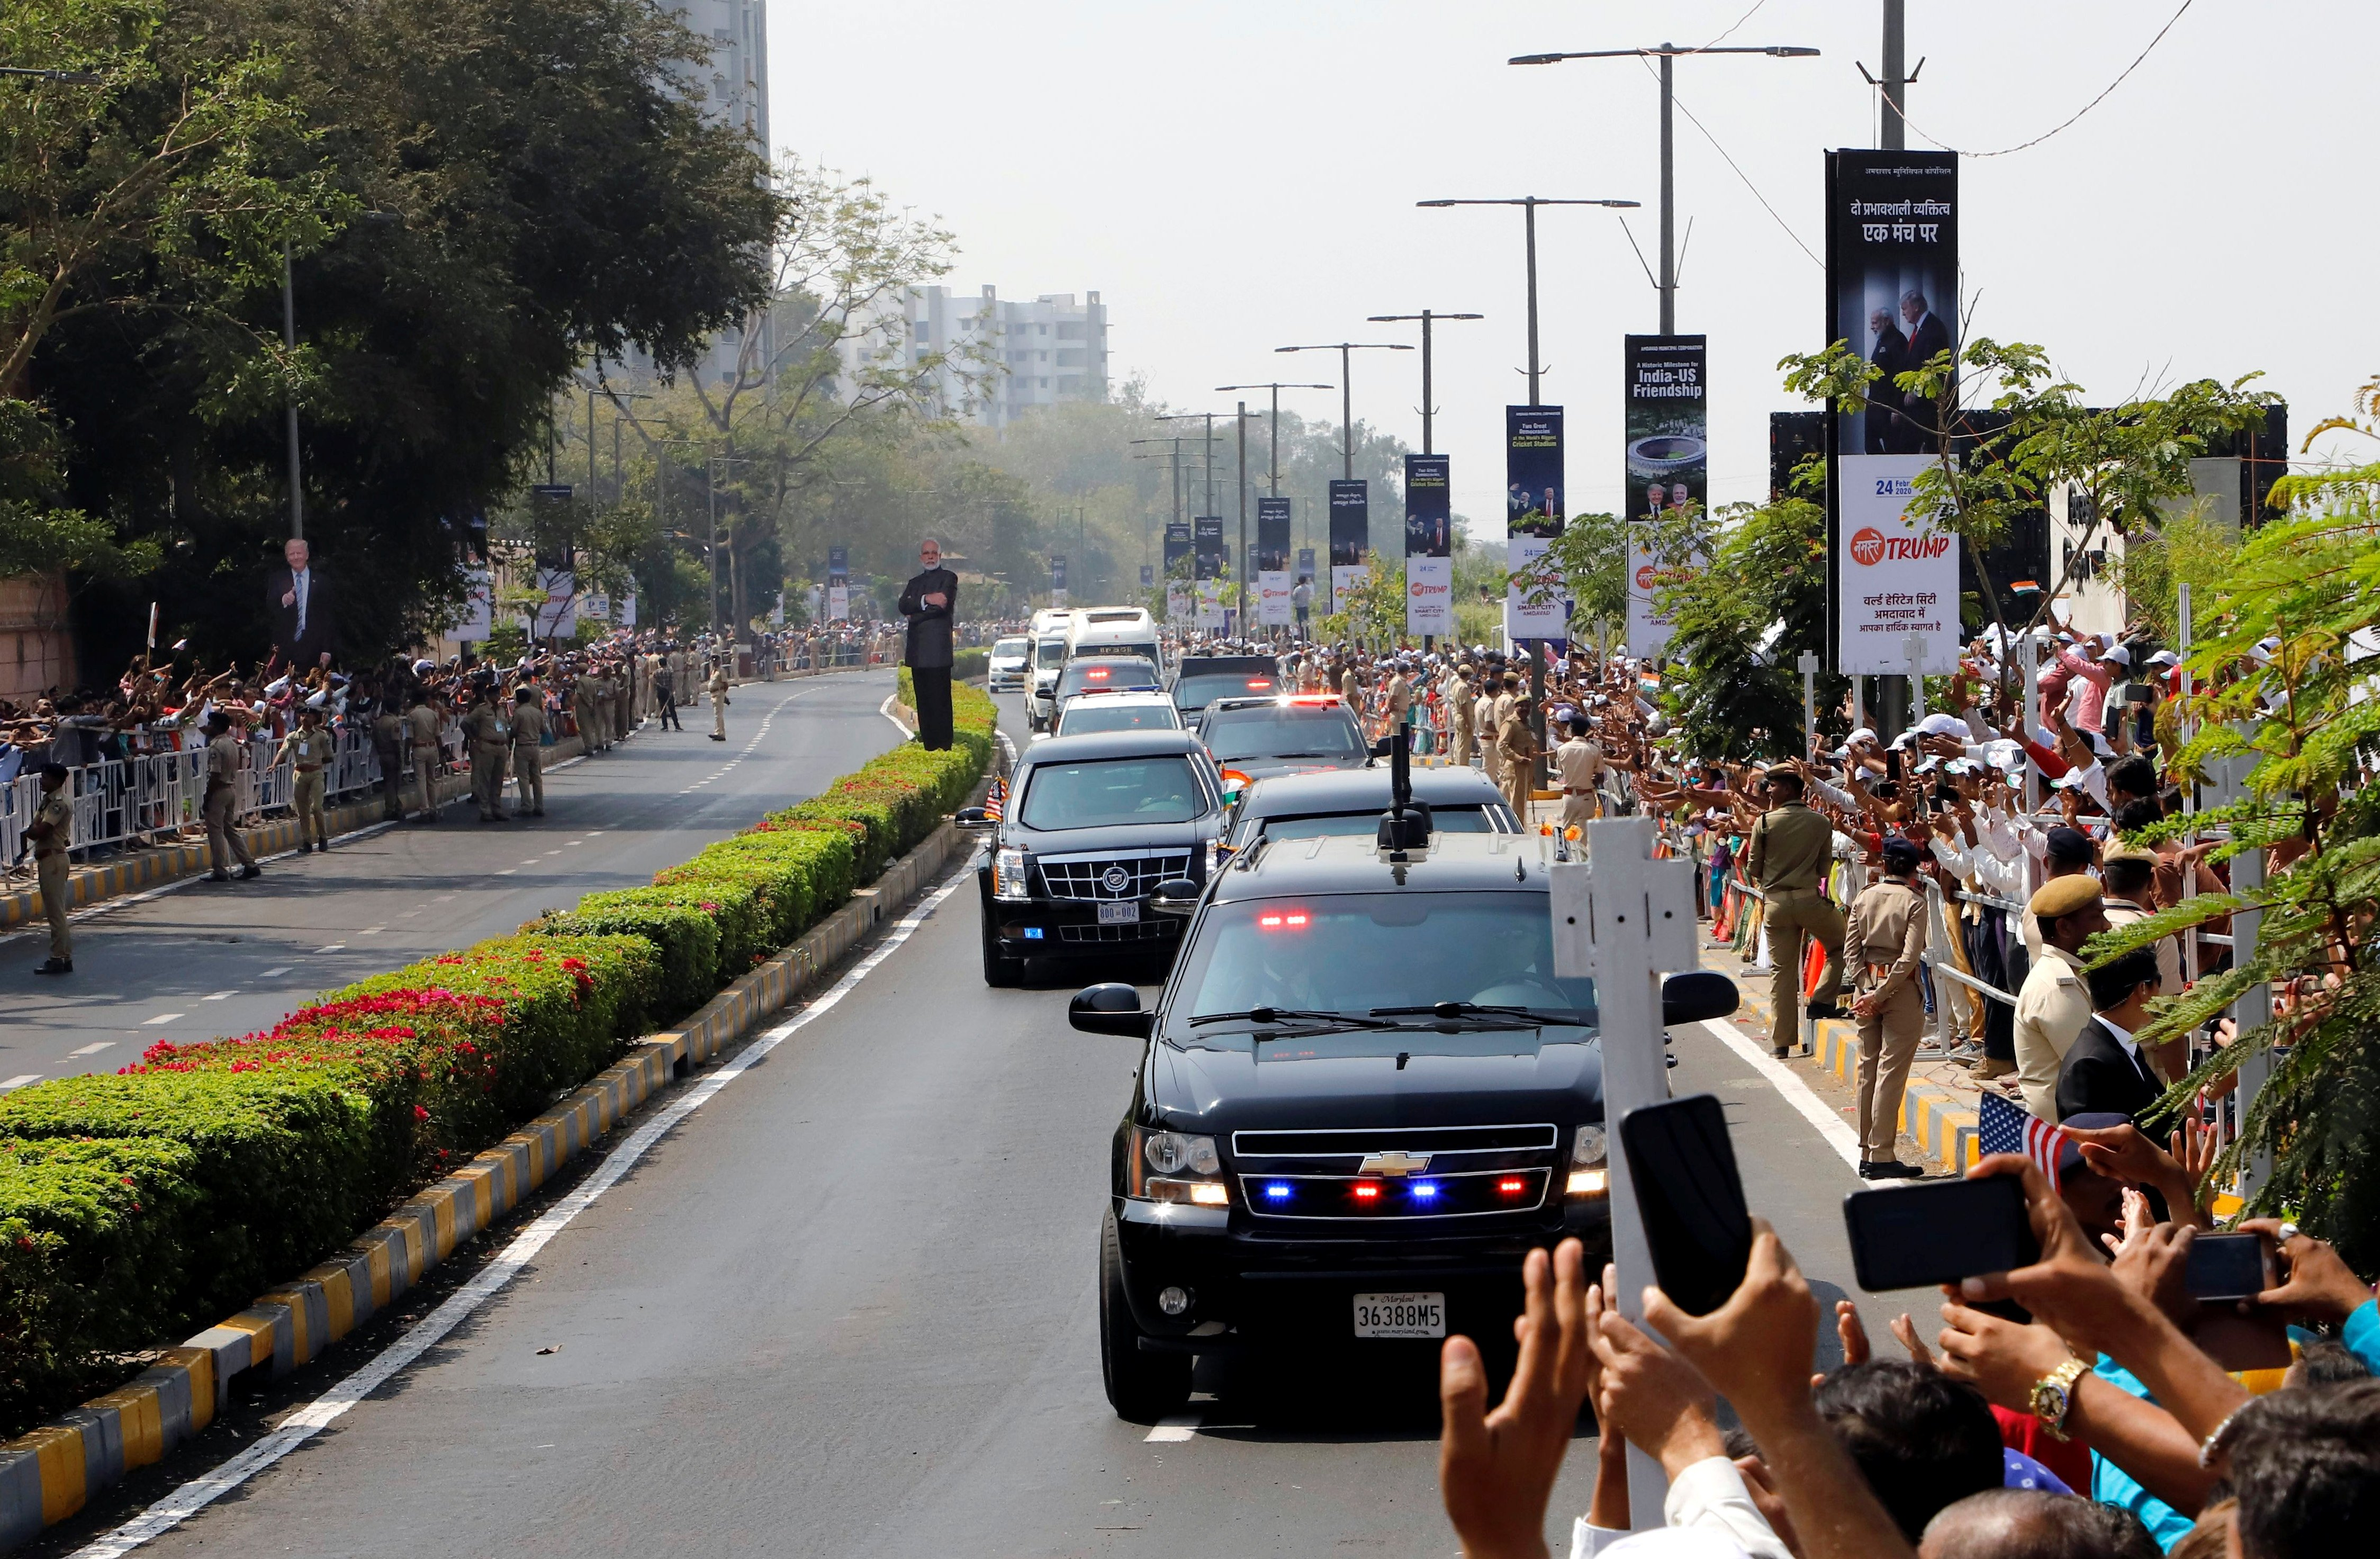 People wave as a motorcade transporting U.S. President Donald Trump and first lady Melania Trump passes enroute to Gandhi Ashram in Ahmedabad, India, February 24, 2020. (REUTERS/Stringer)